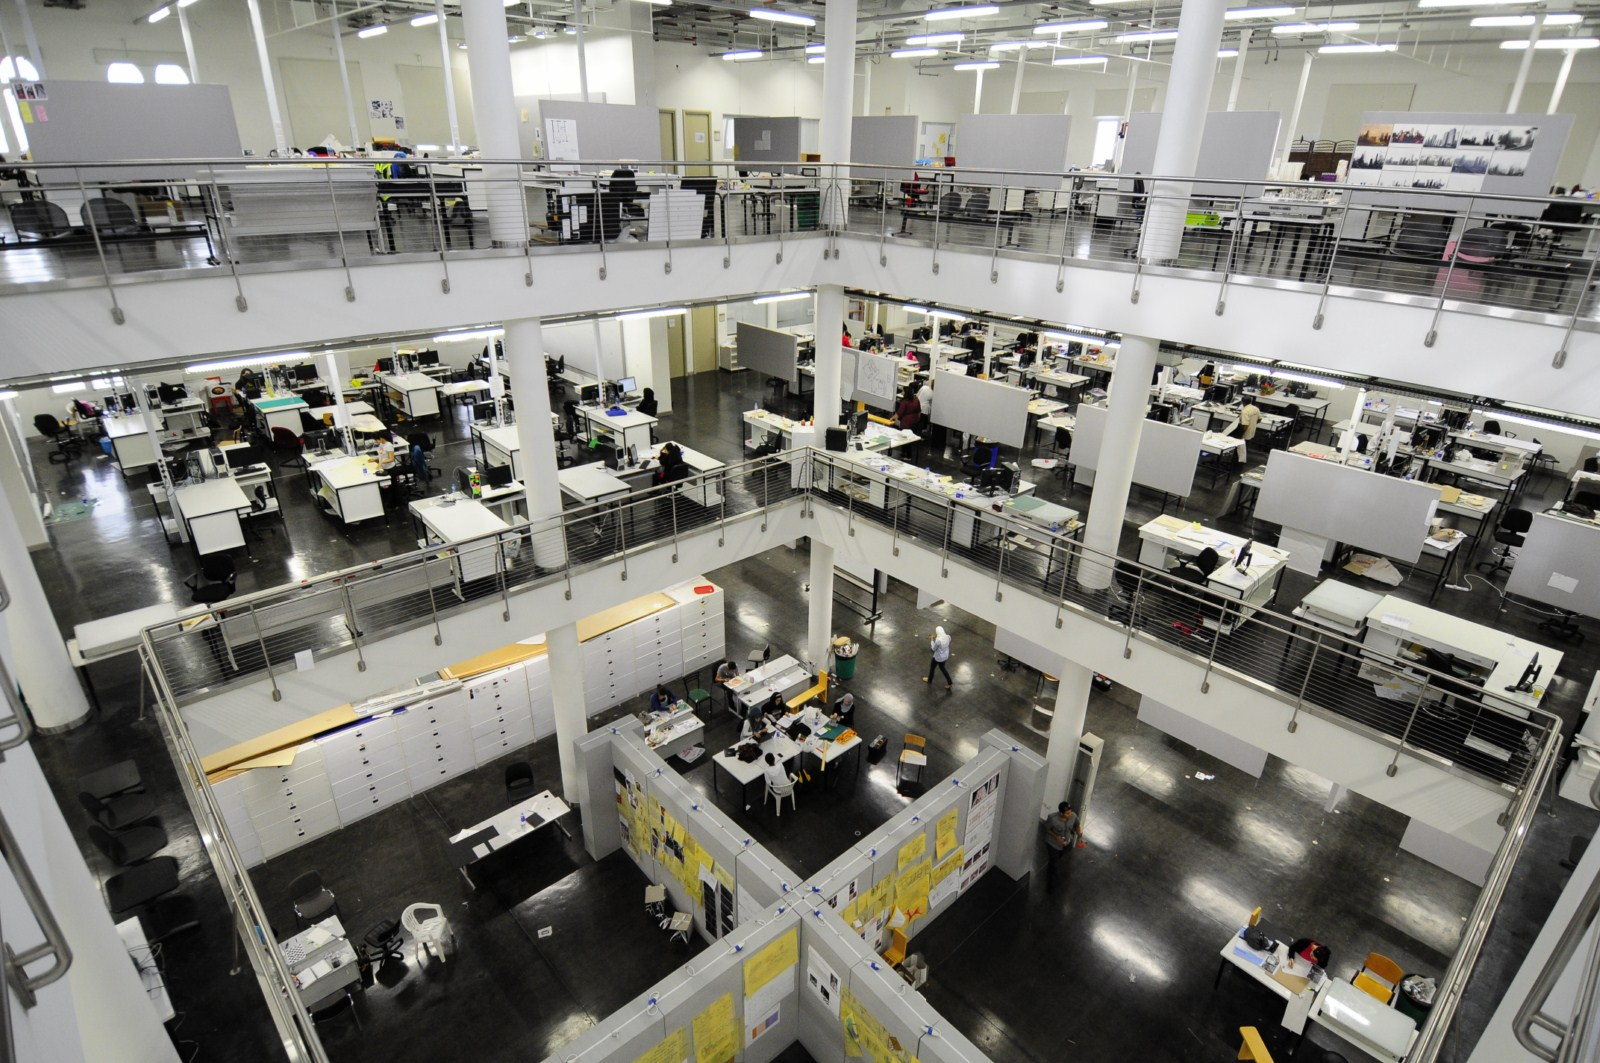 Interior View Of The College Architecture Where Each Student Has His Her Own